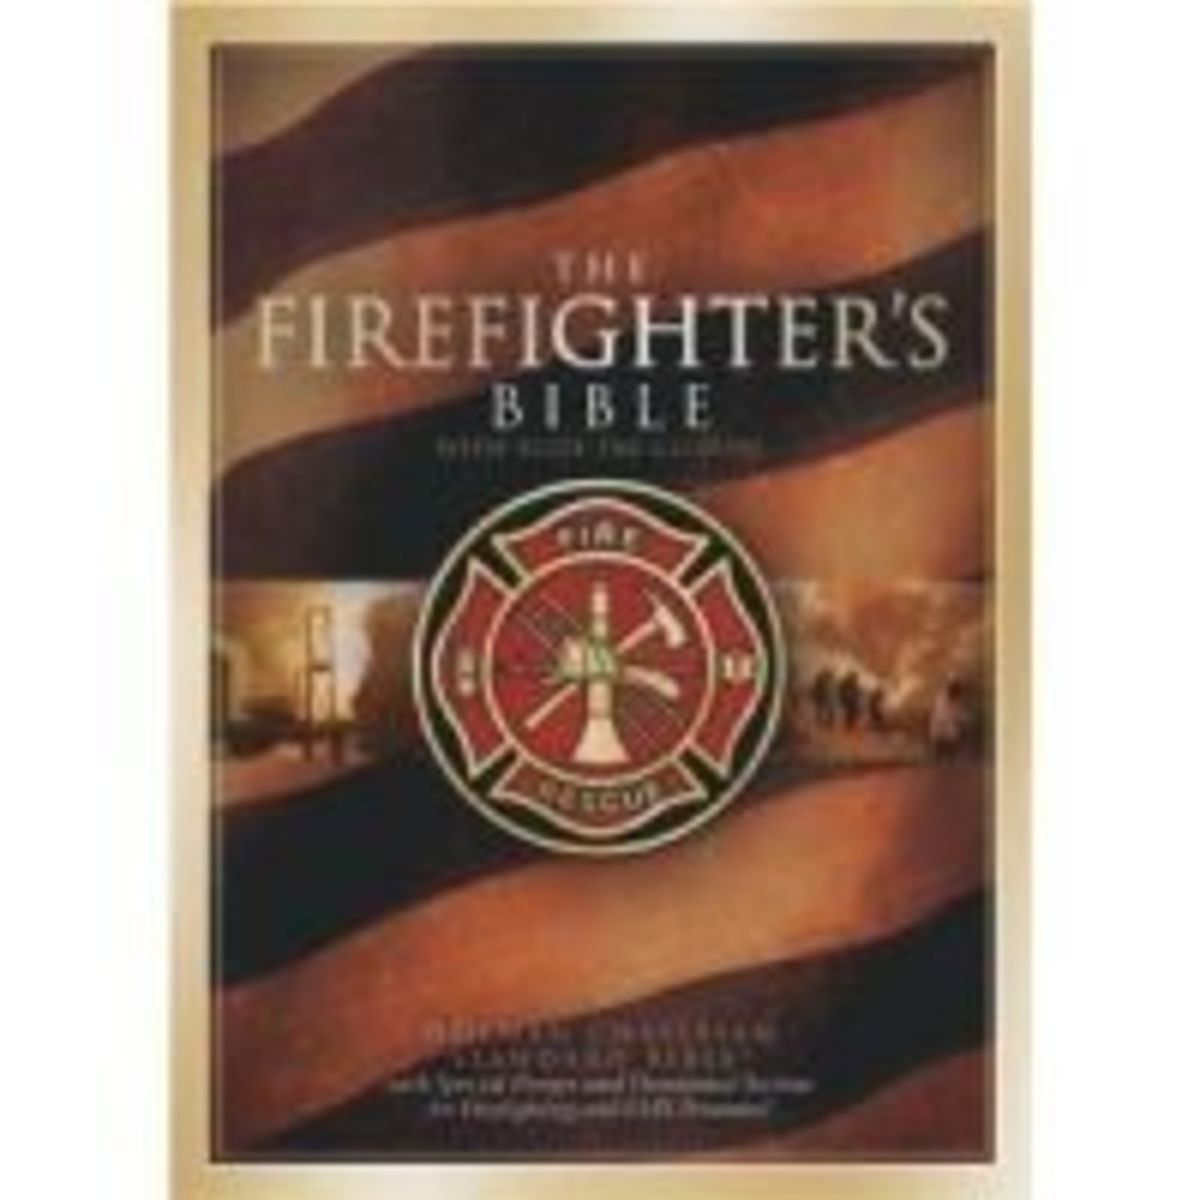 Purchase a Firefighter's Bible